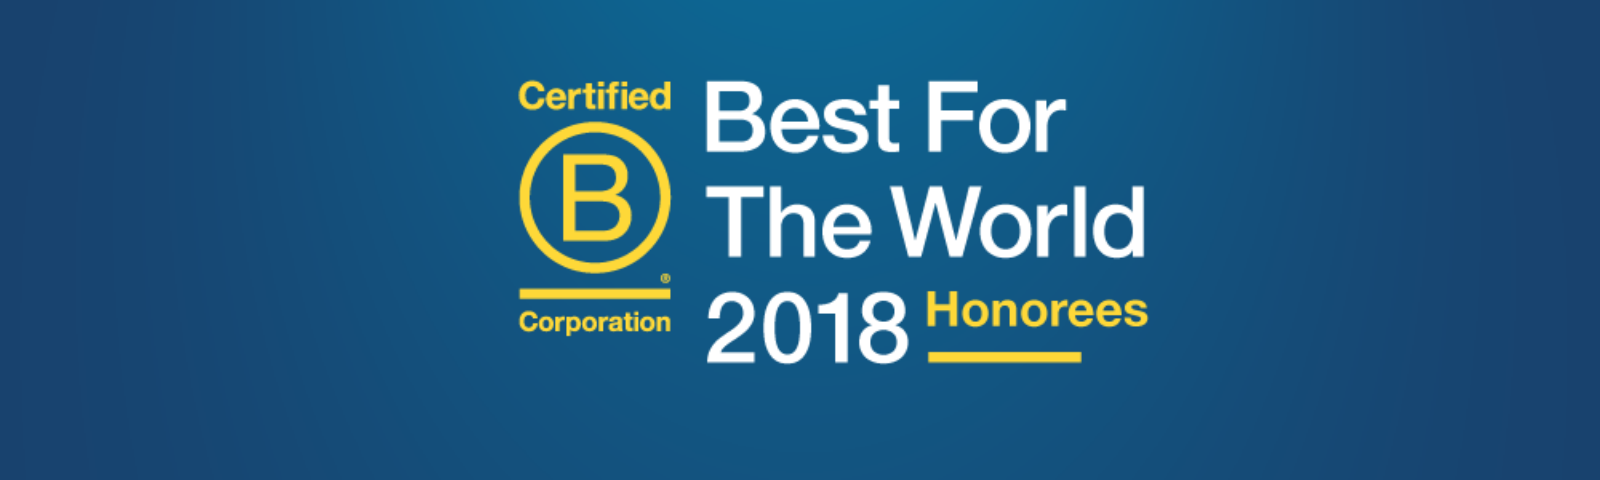 Meet the 2018 Best For The World Honorees – B the Change